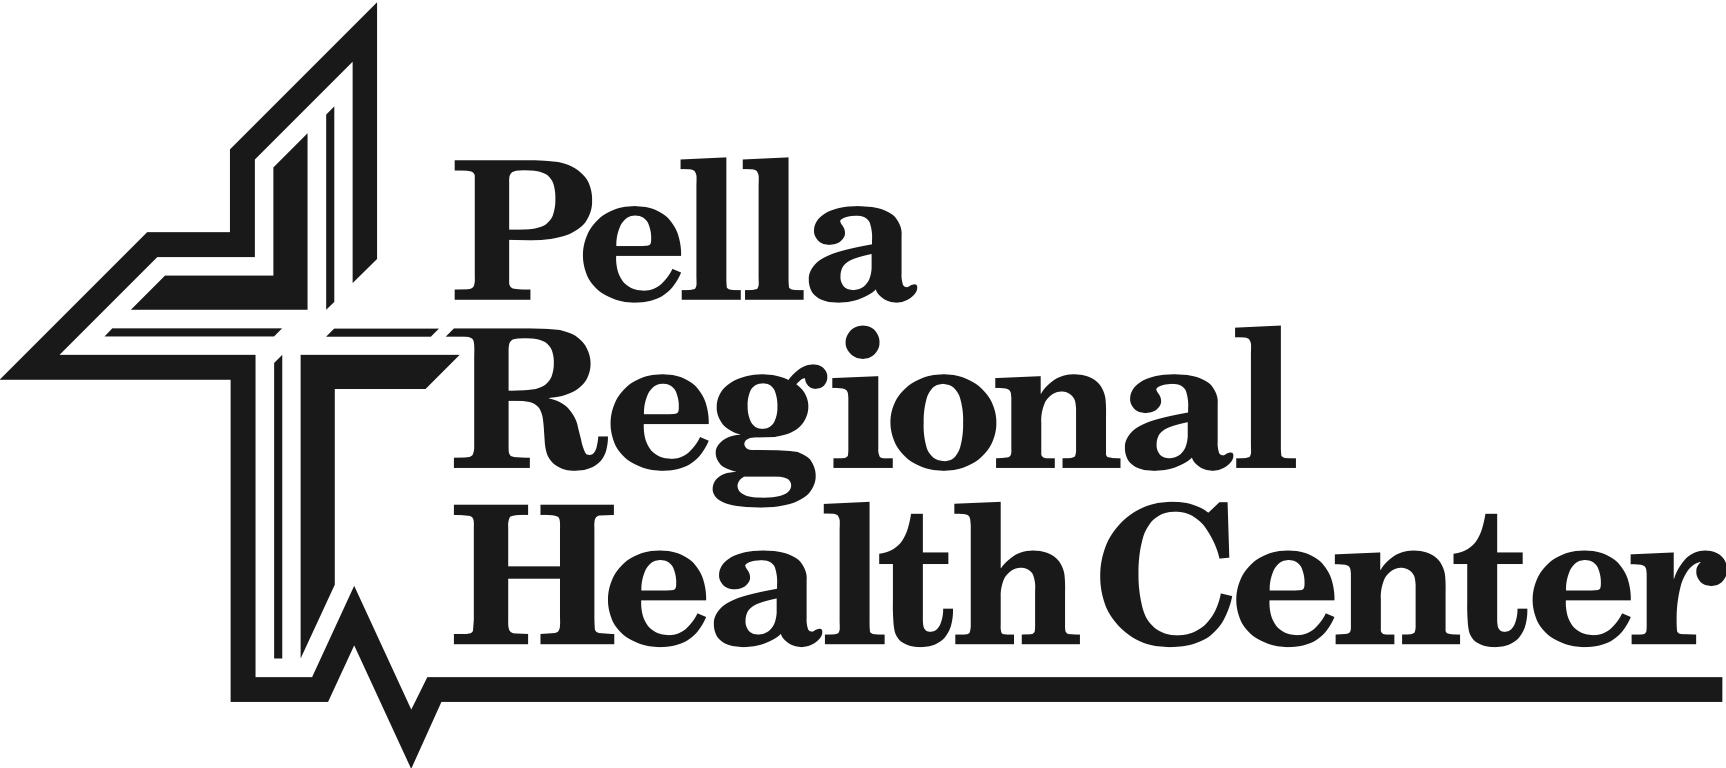 Pella Regional Health Center Pharmacy